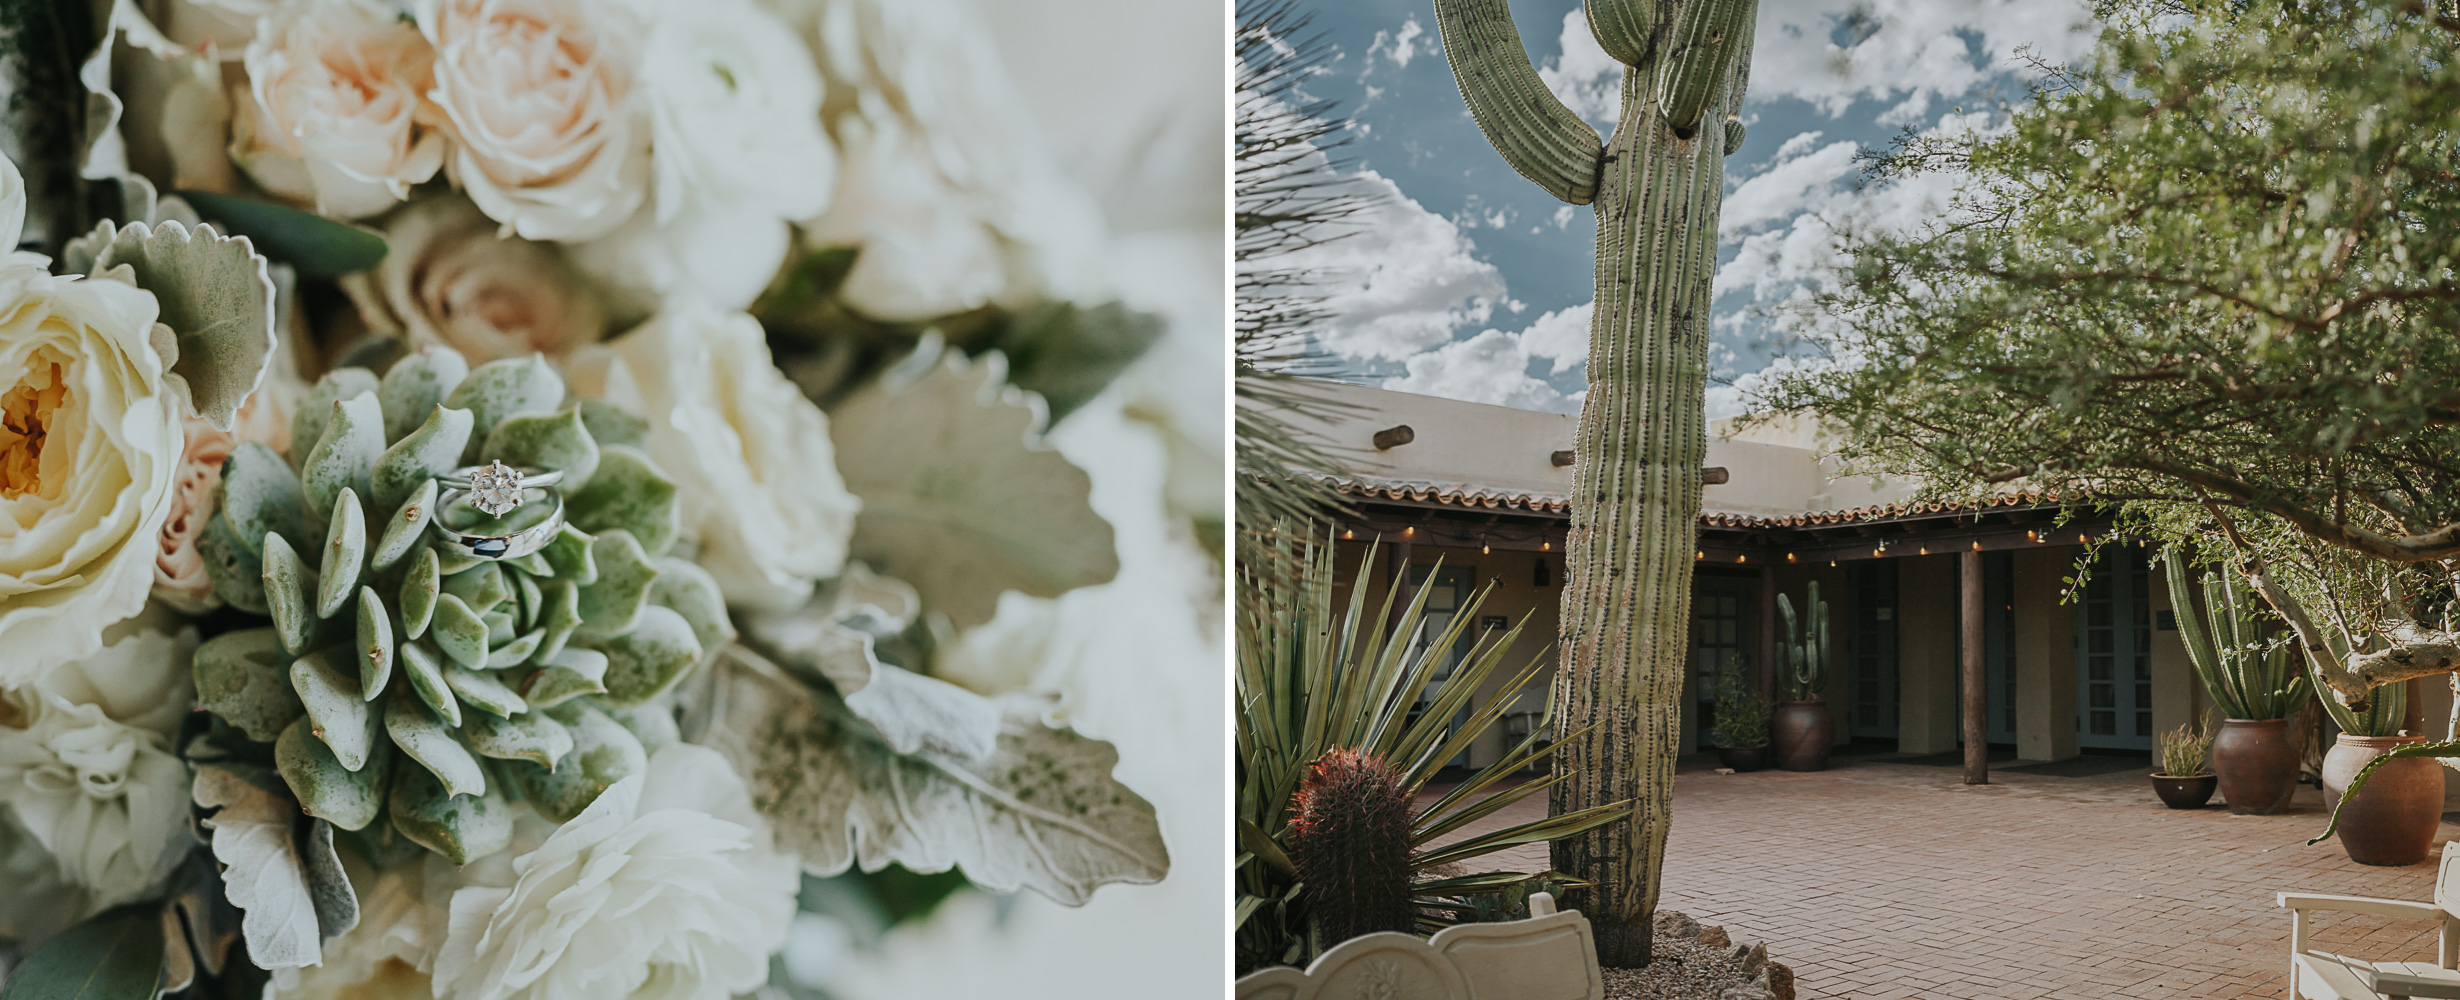 Desert Botanical Garden Wedding Denver Wedding Photographer Elopements 2